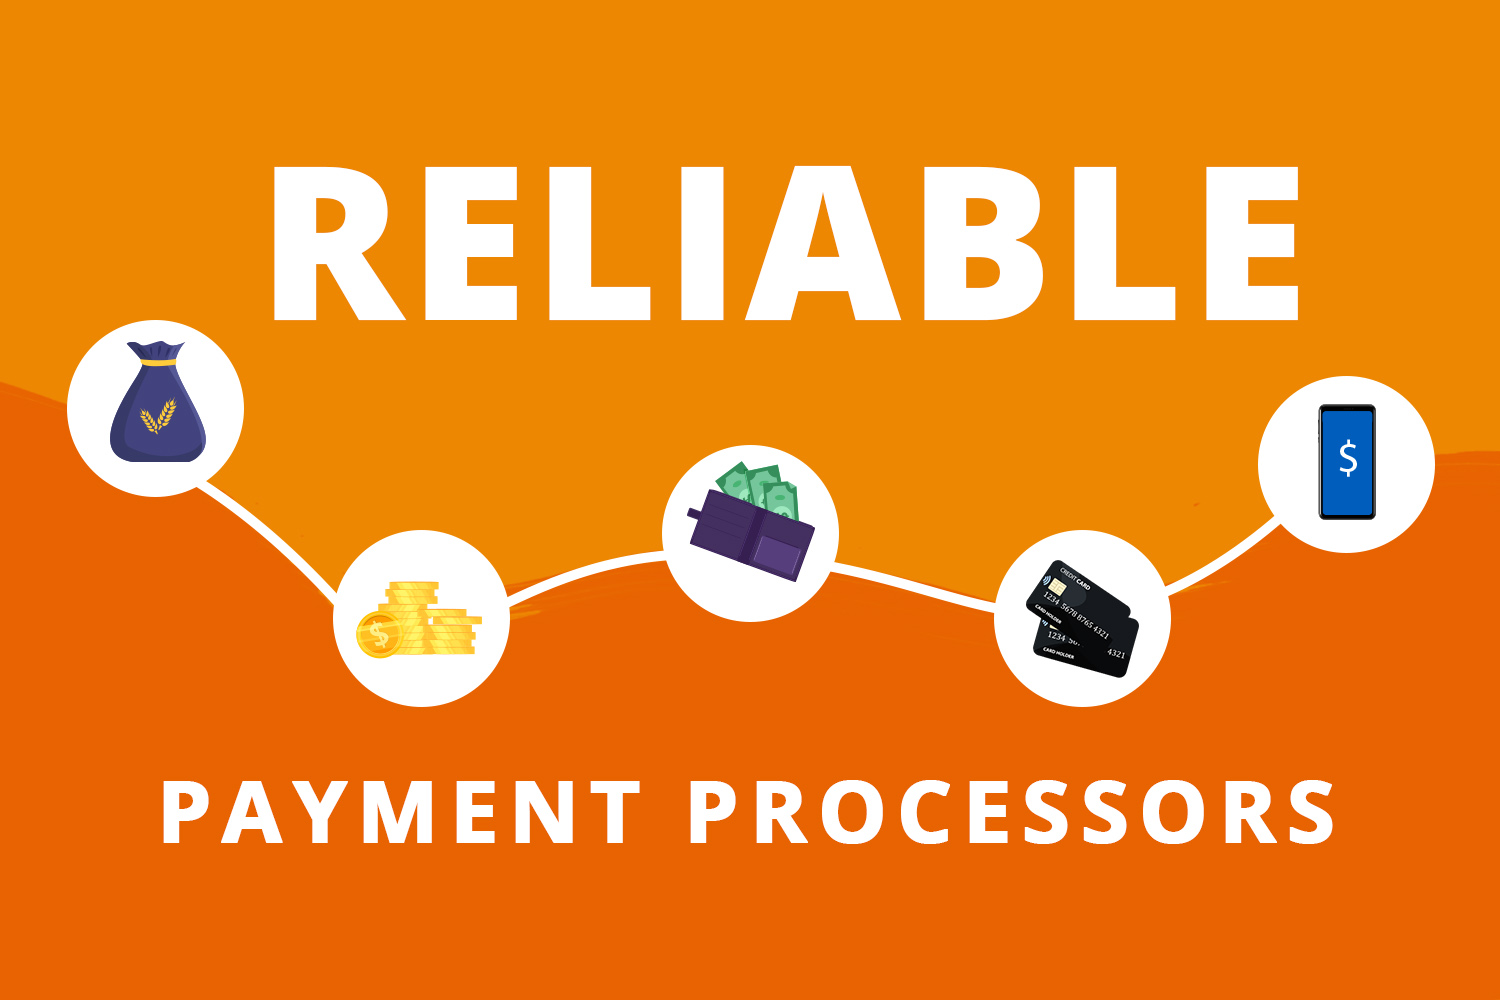 Reliable Payment Processors